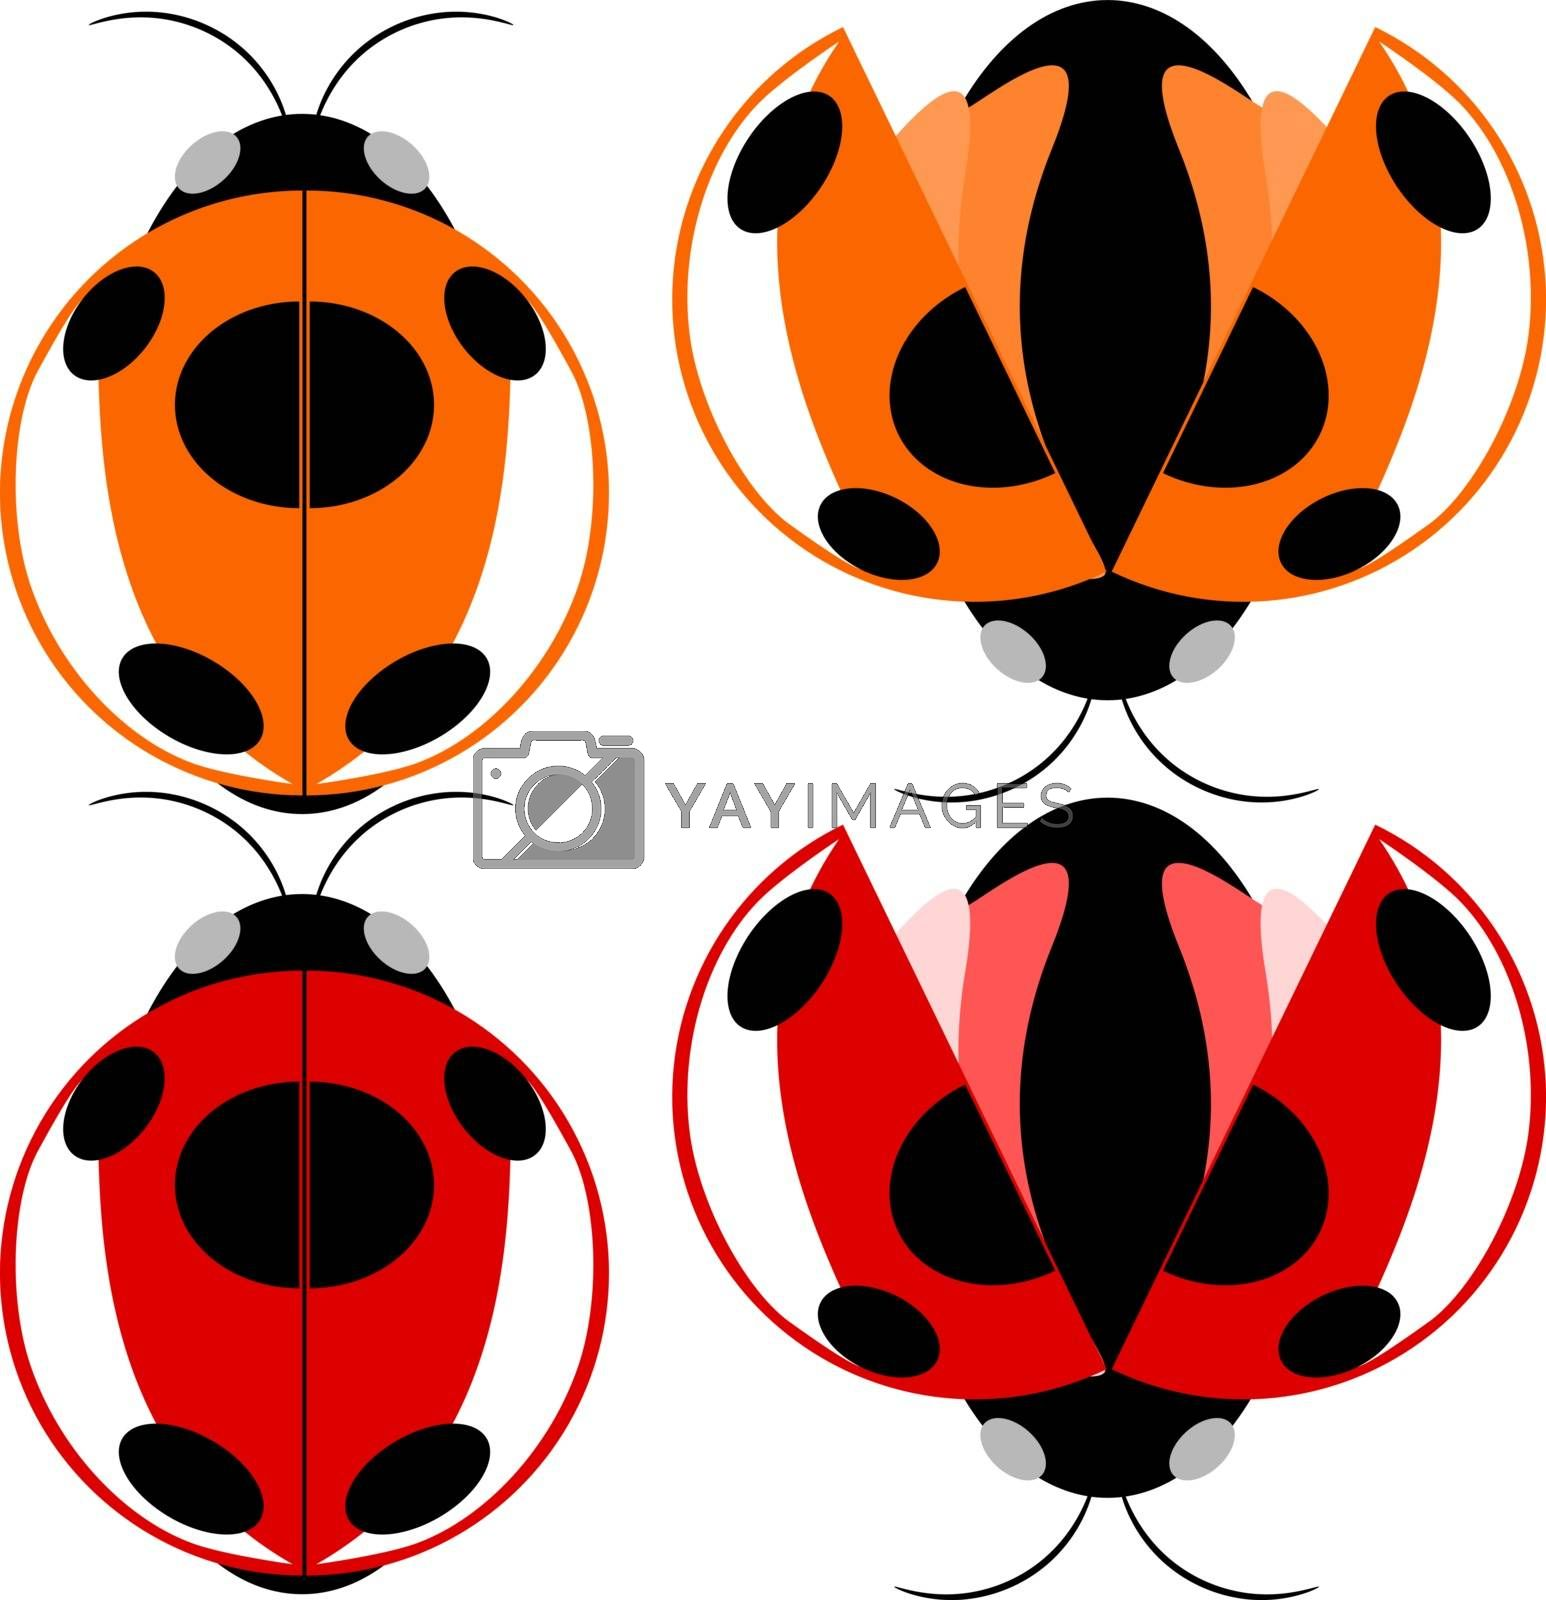 Beetle red and yellow fly cartoon illustration